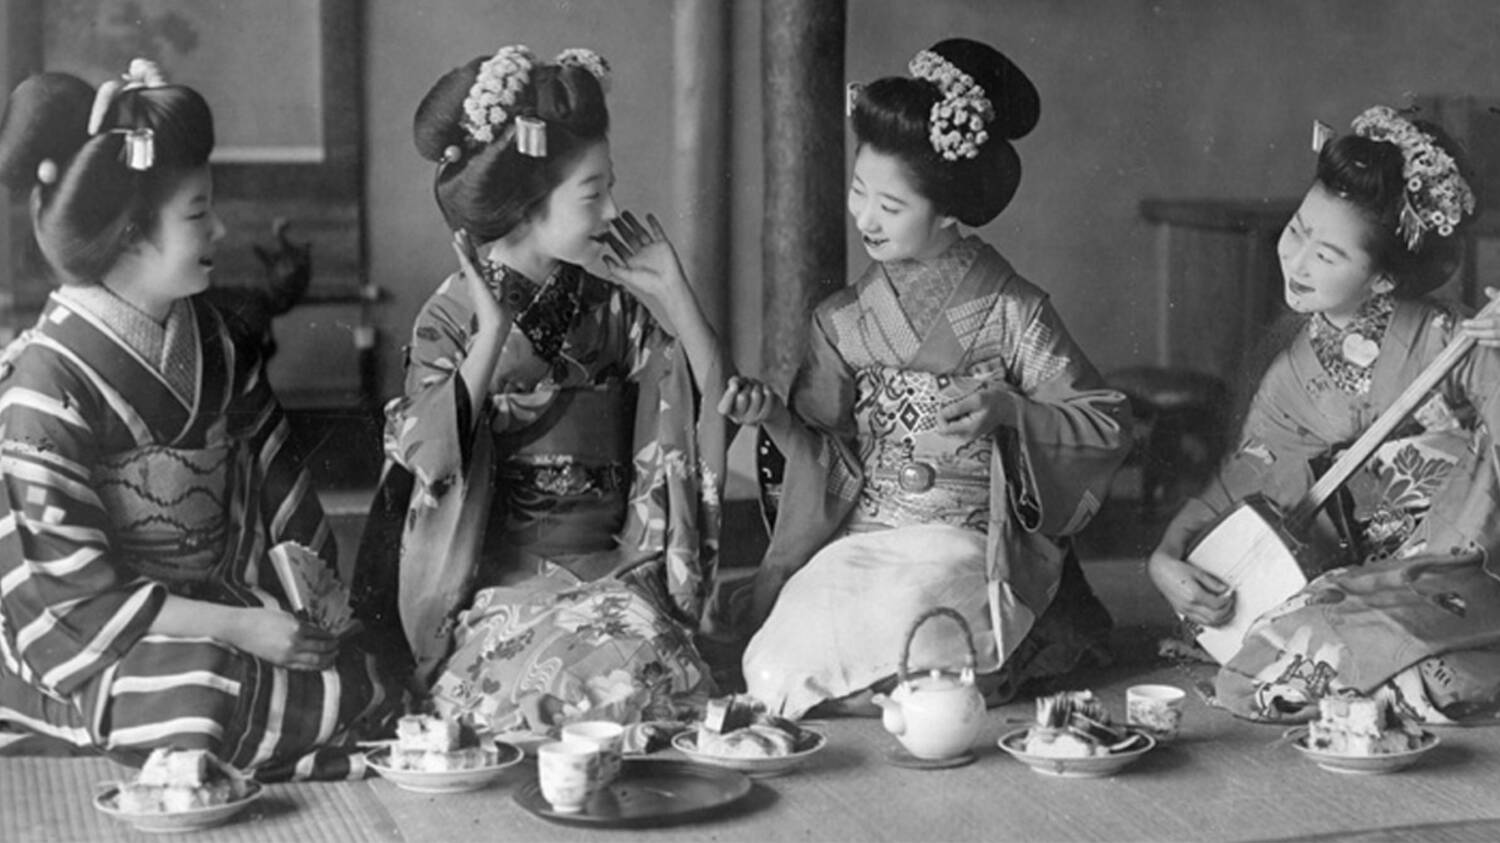 Japanese photographs at Broughton House